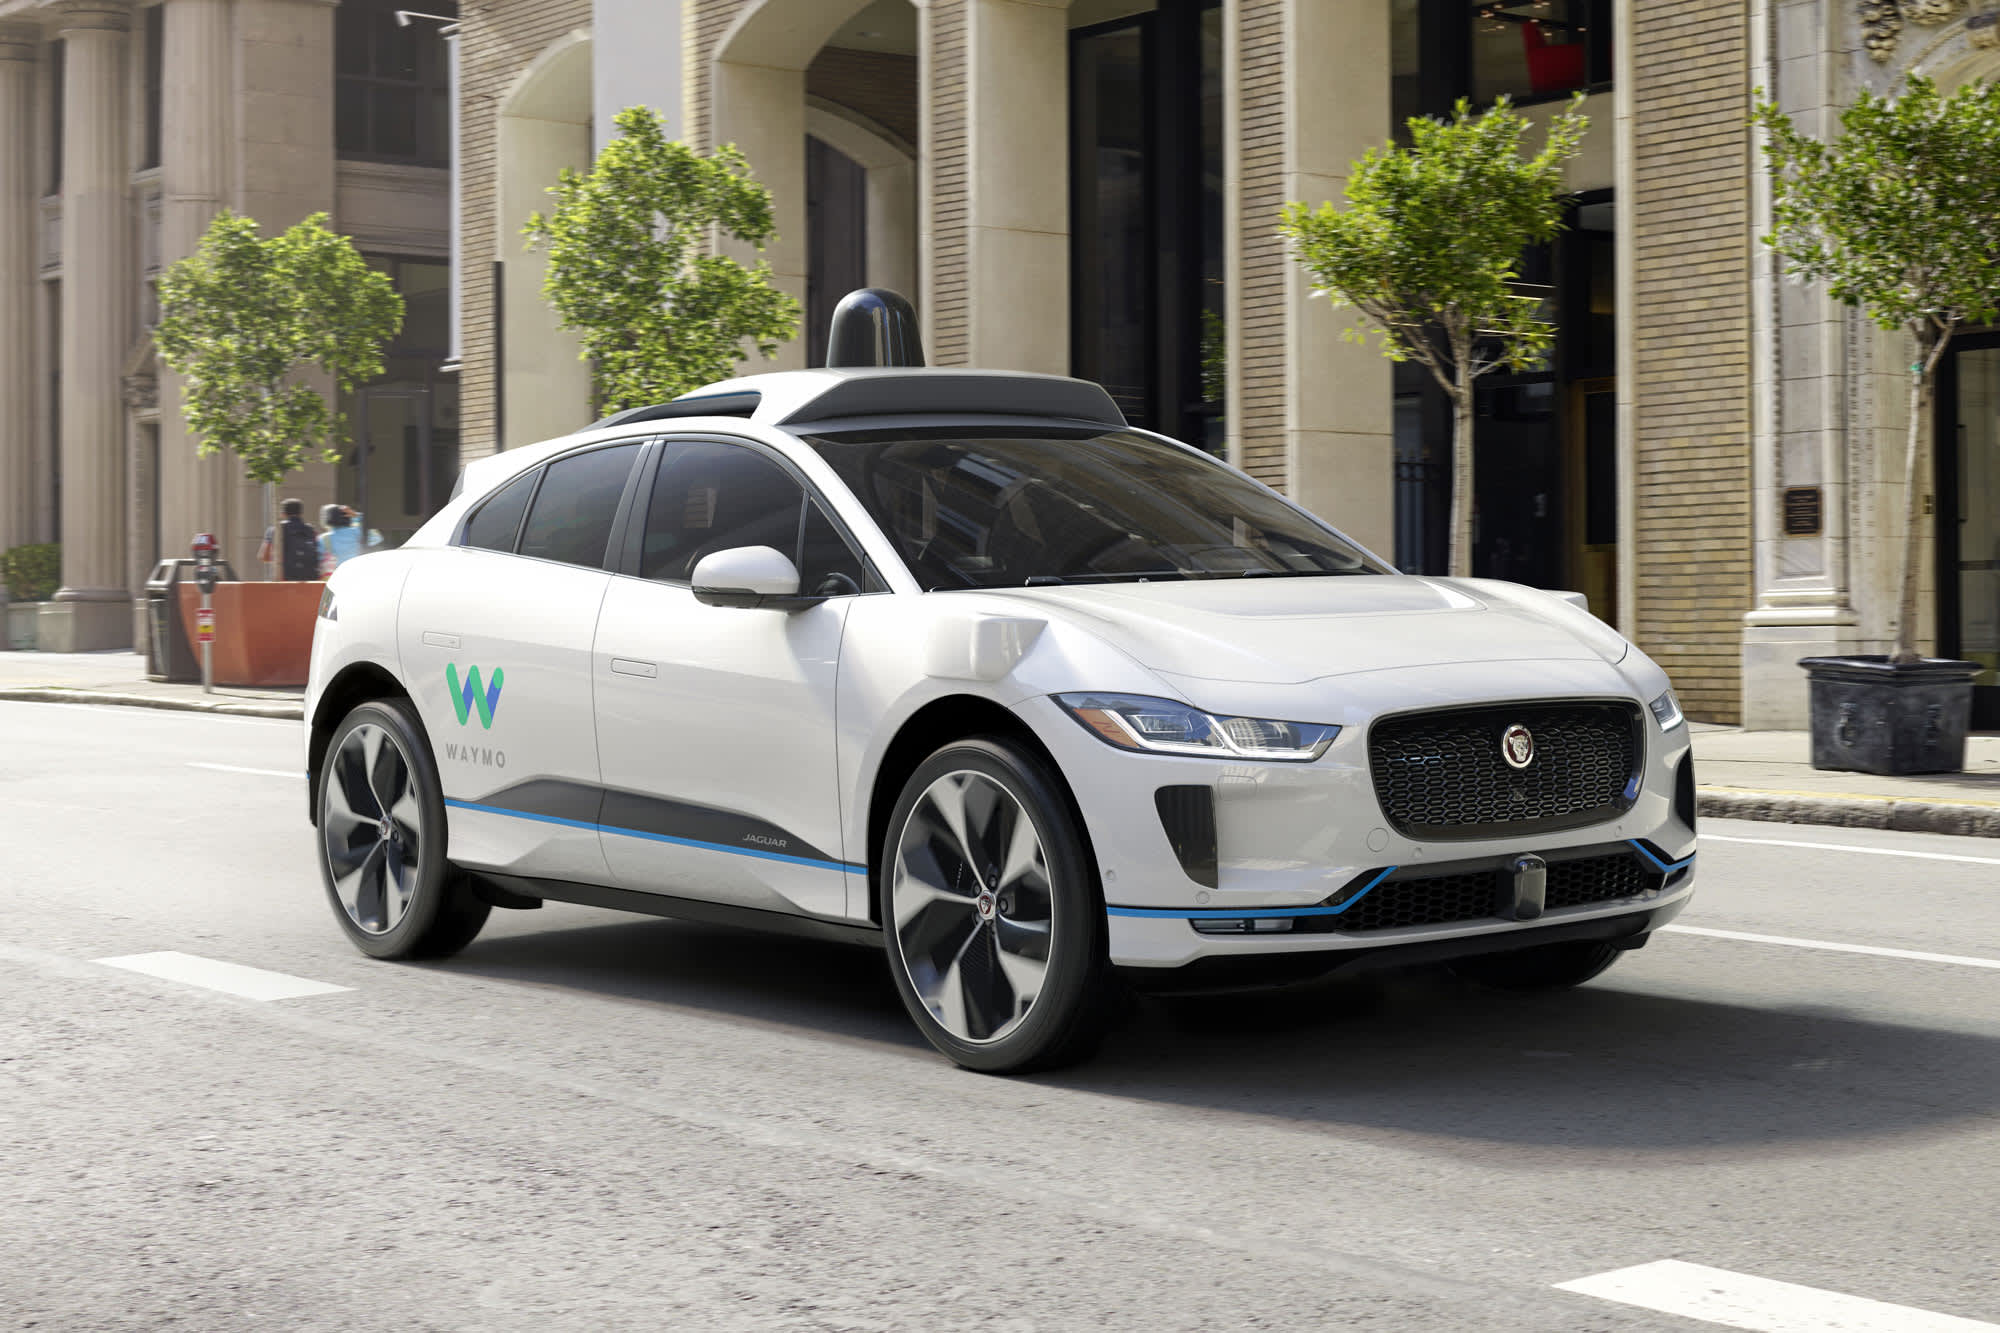 Waymo picks Jaguar for expanding self-driving car fleet